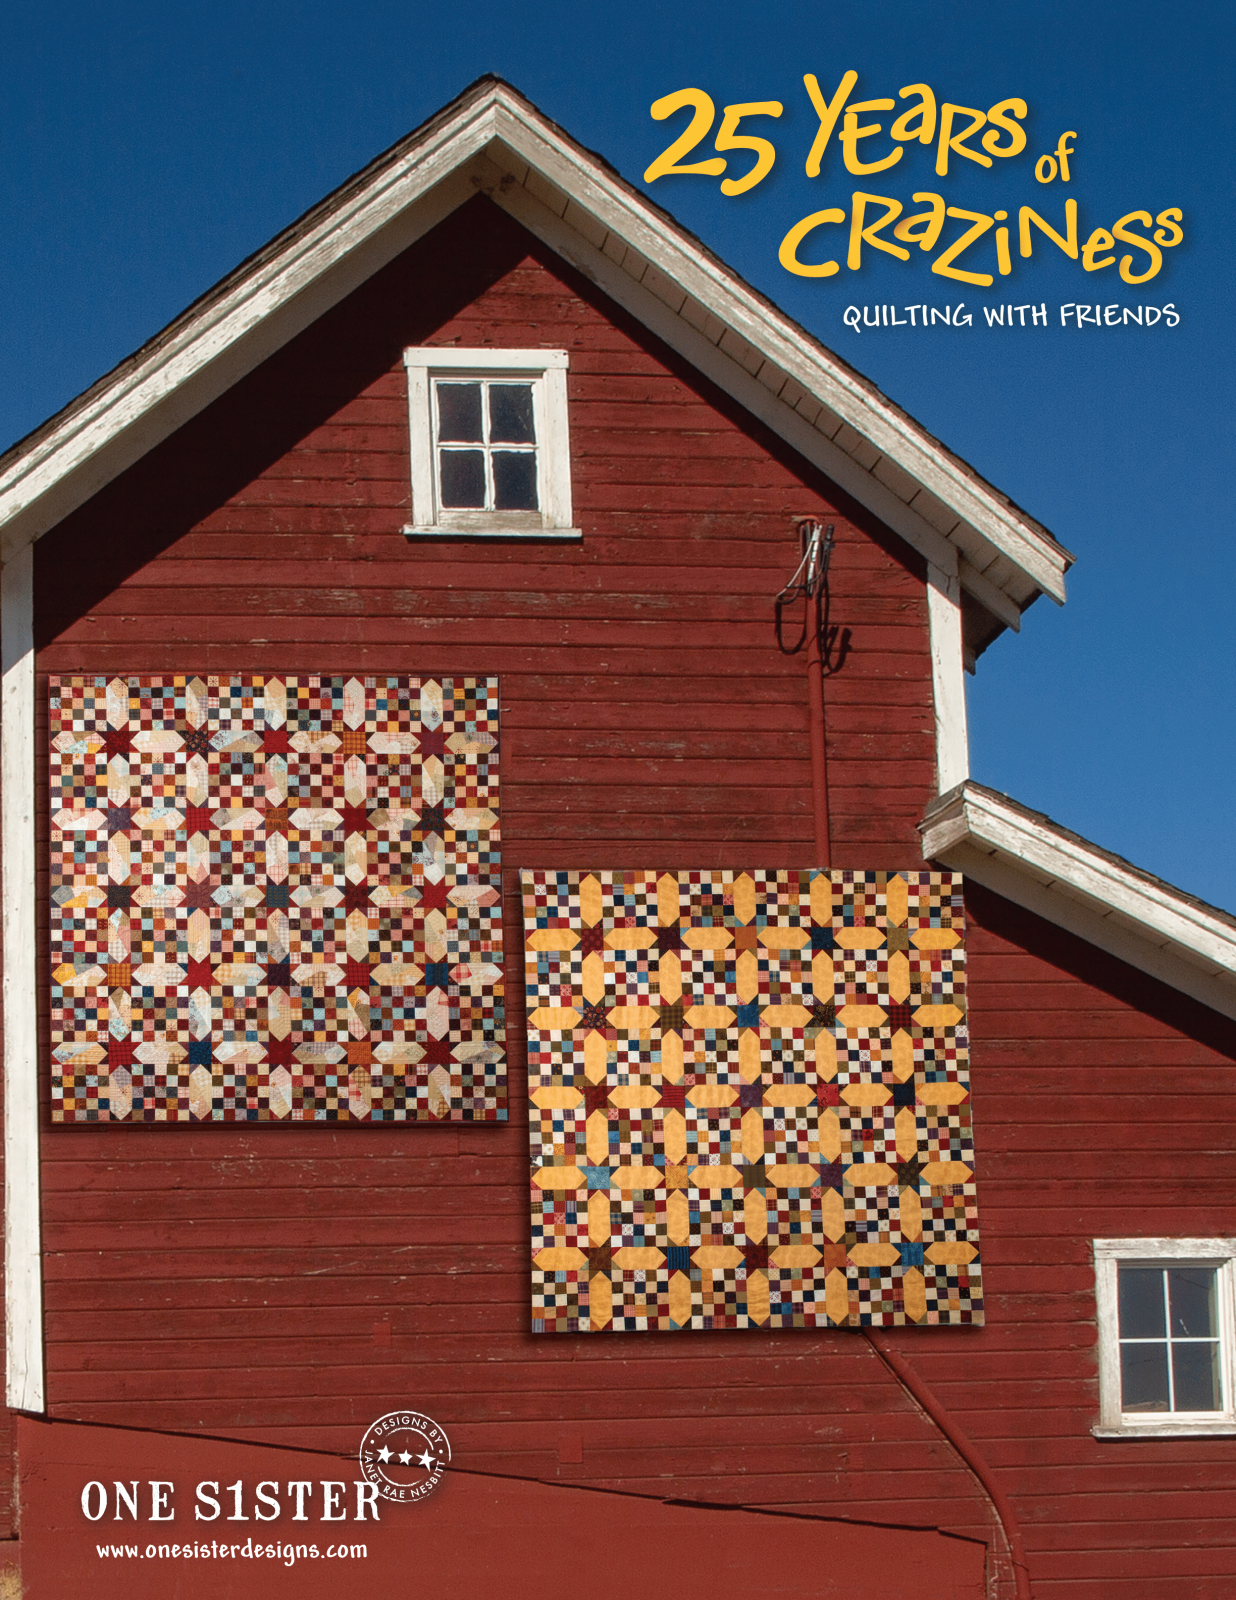 25 Years of Craziness-quilting with friends